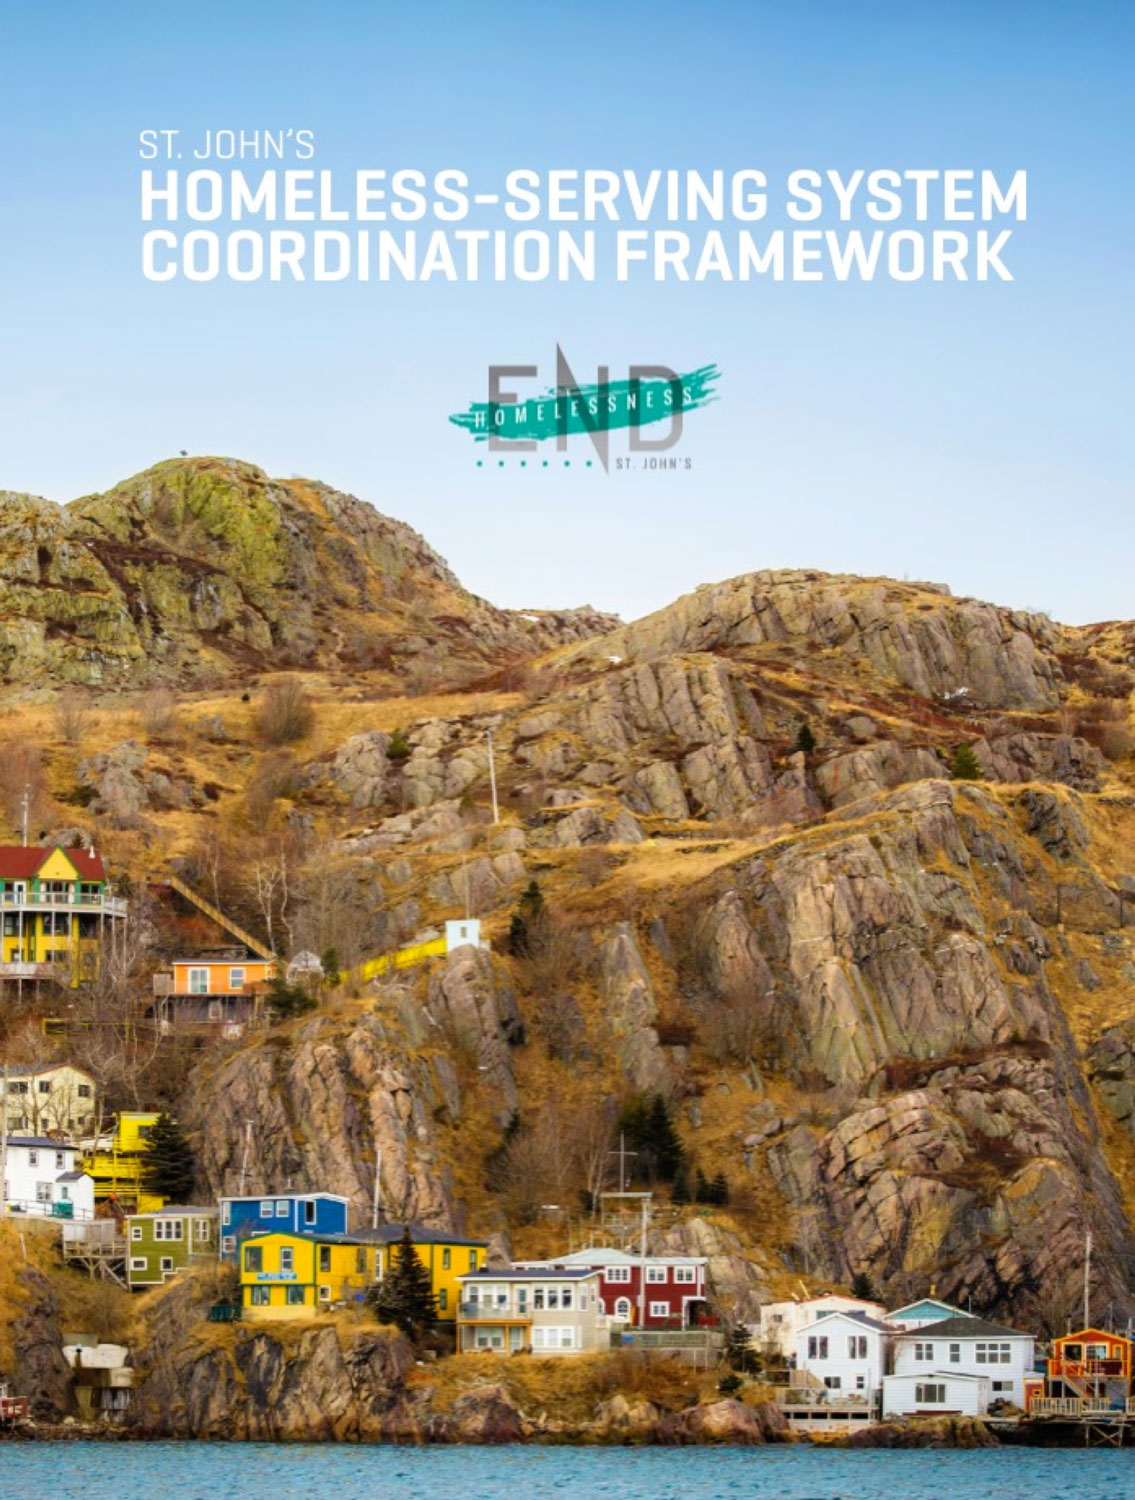 System Coordination Framework - This document was developed as result of our work with End Homelessness St. John's and the City of St. John's where we developed as System of Care Map, as well as strategy to coordinate homeless serving agencies using Coordinated Access and Assessment. You will find useful tools here that you can apply in your own community and use this document as a guide if you are developing your own Framework.Download Report